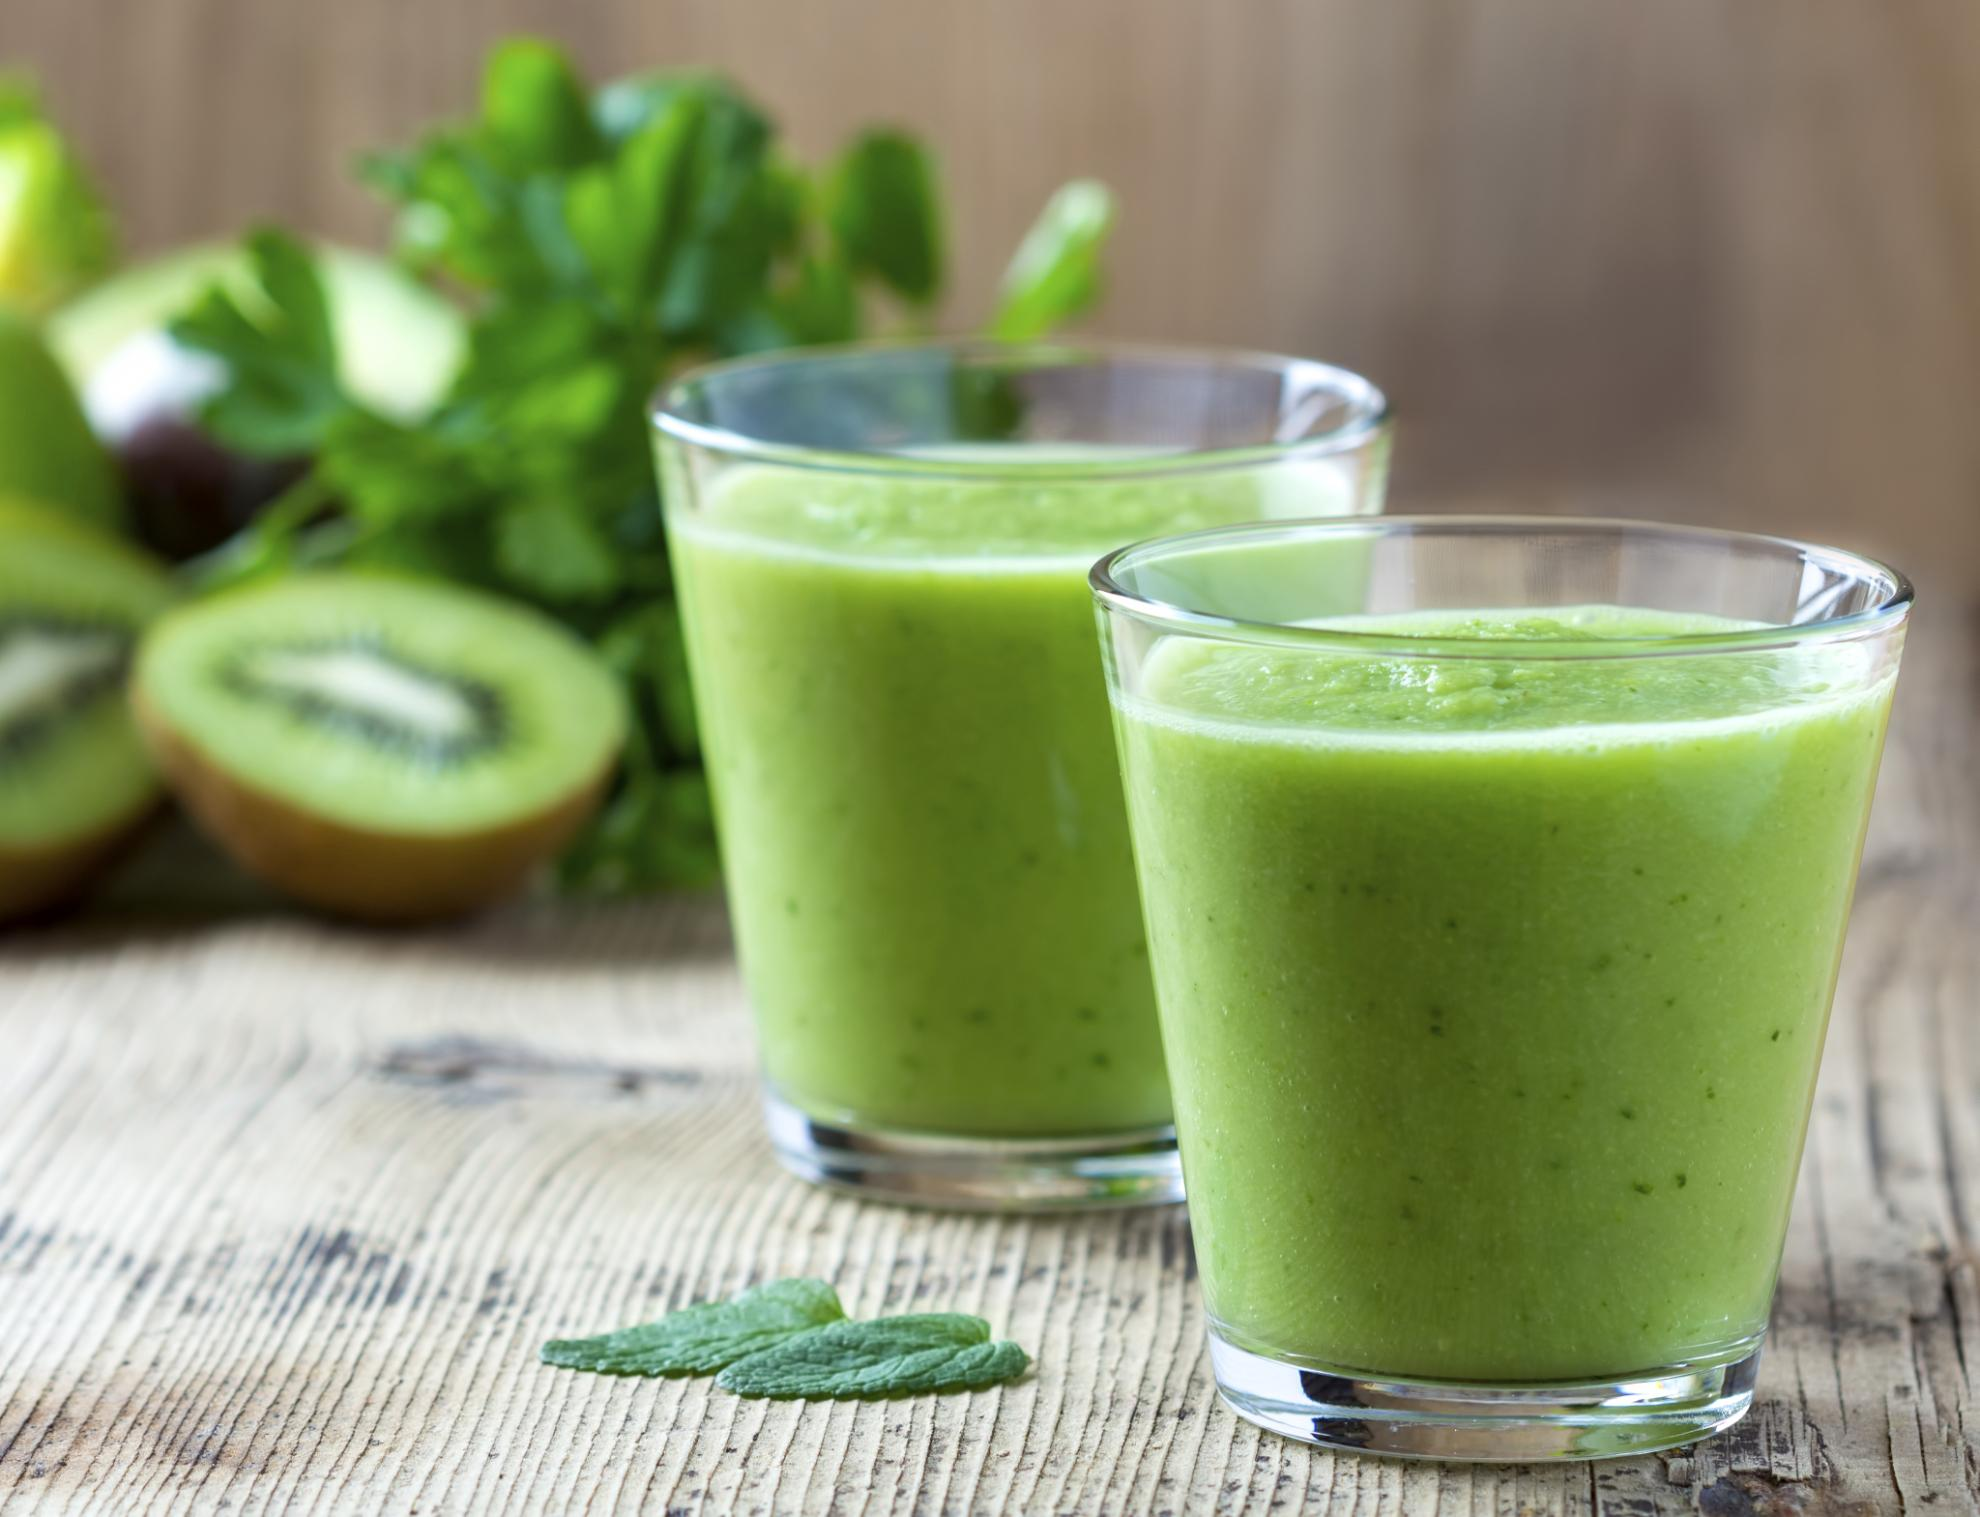 RT @AOL: Make kale juice at home with AOL Expert @MollyBSims and chef @greenjules: http://t.co/m3GQgzzYsf #AOLExperts http://t.co/8fAvbD3N5z